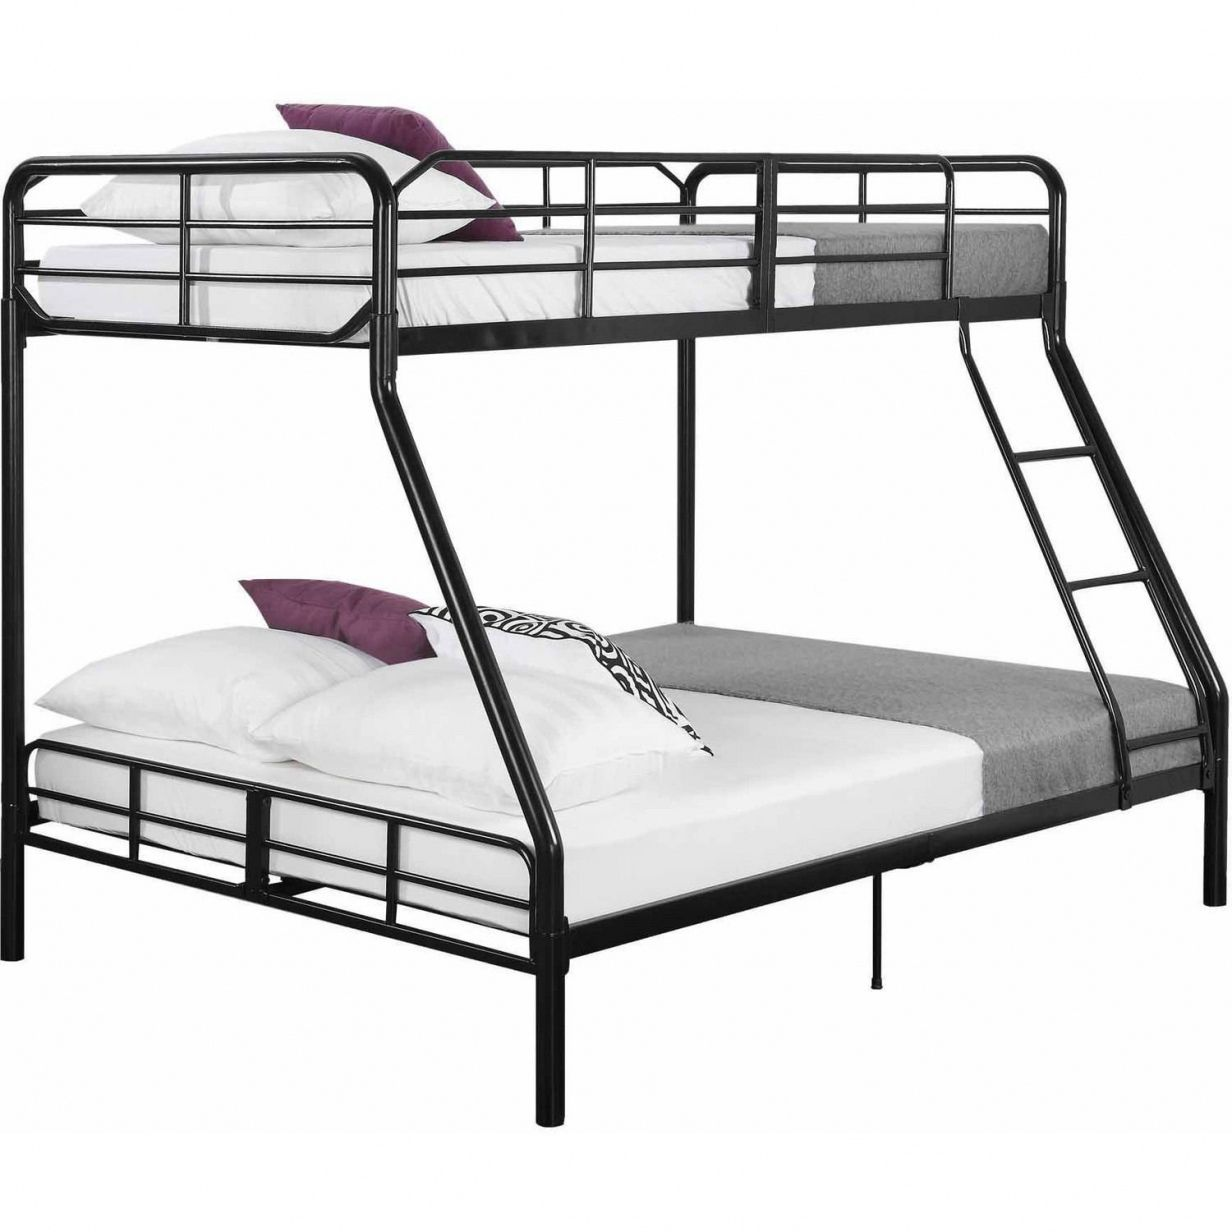 Best Of How To Put Together Metal Bunk Beds Check More At Http